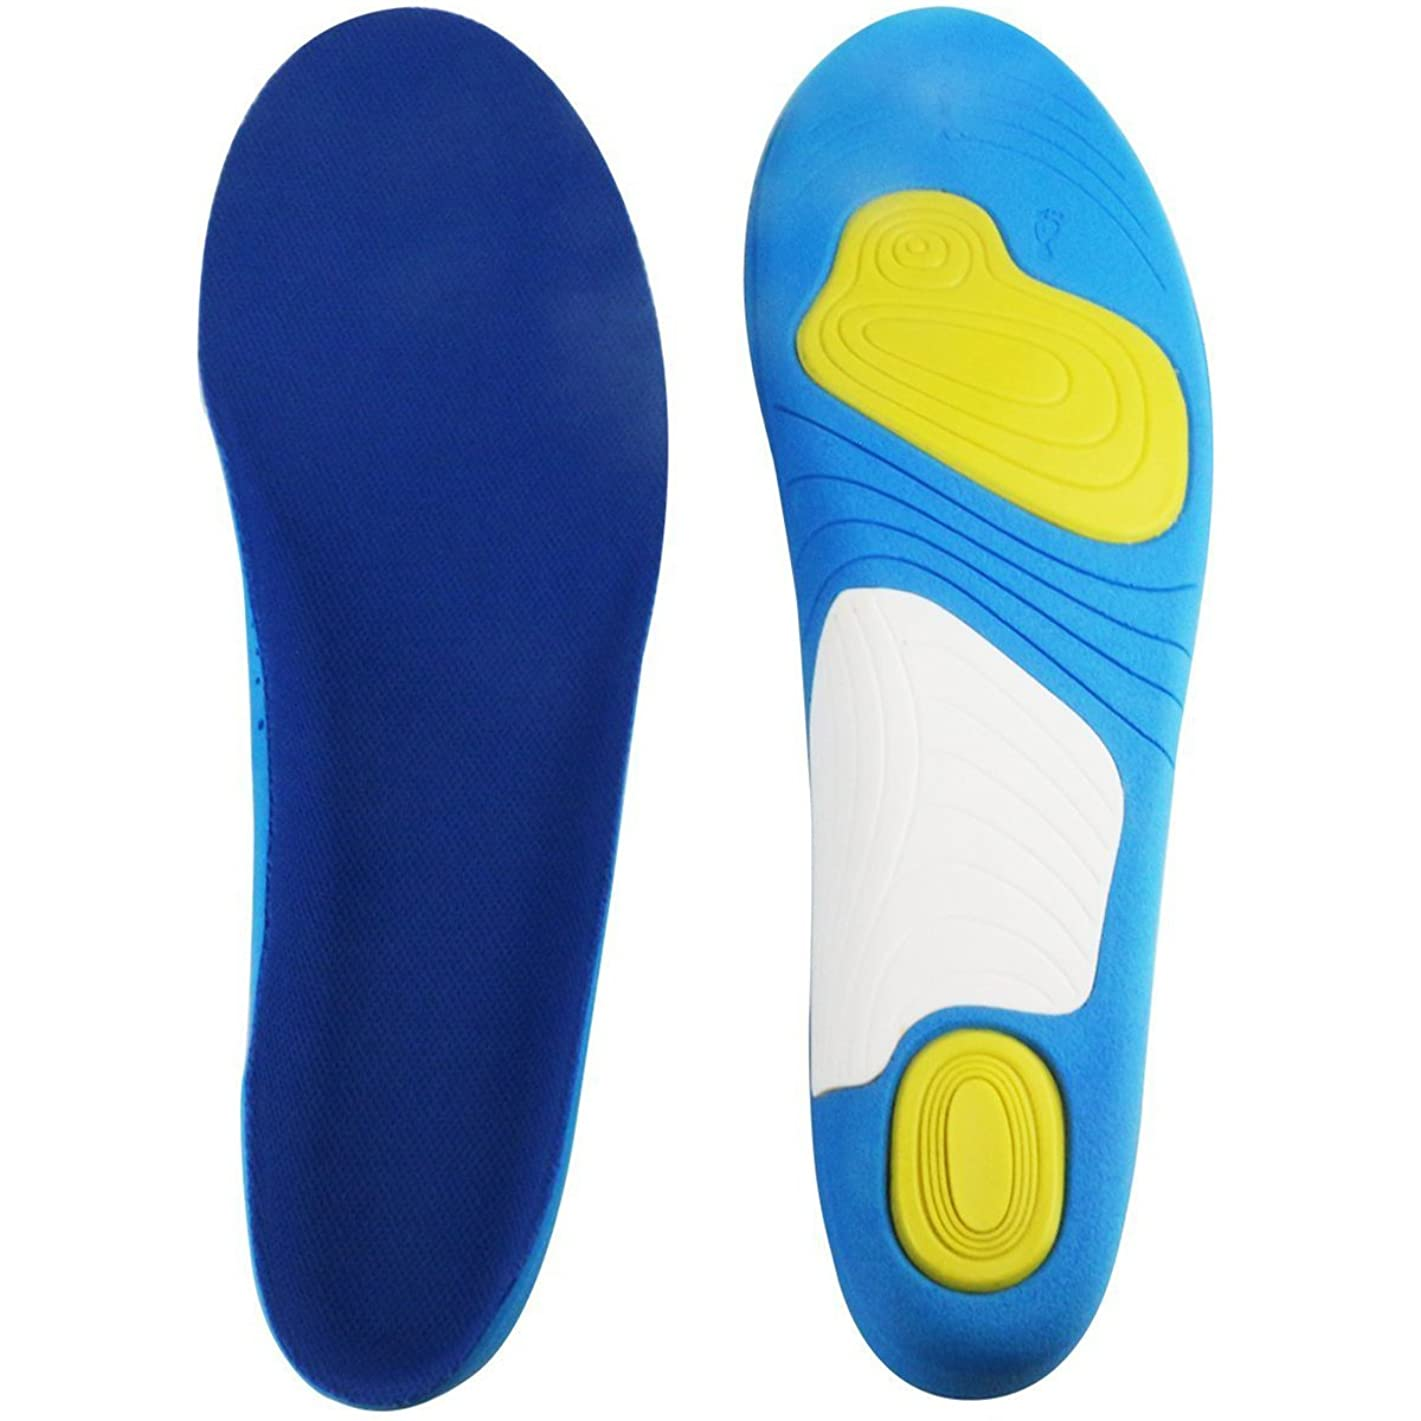 Arch Support Insoles for Shock Absorption and Cushioning, HLYOON Shoe Inserts Size 7-10